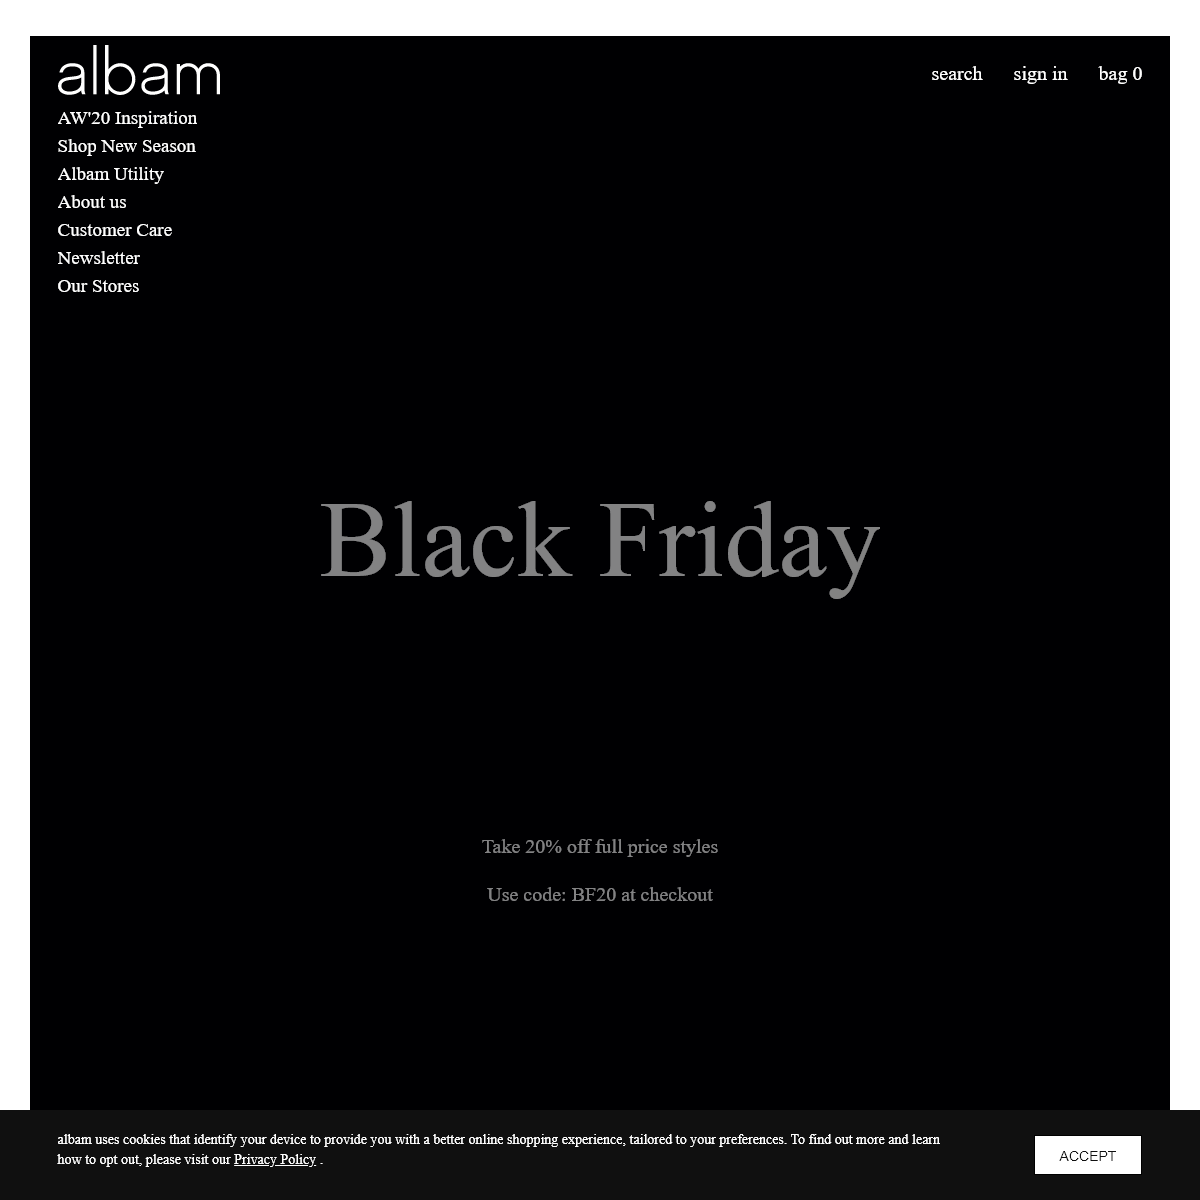 albam Clothing - Official Online Store